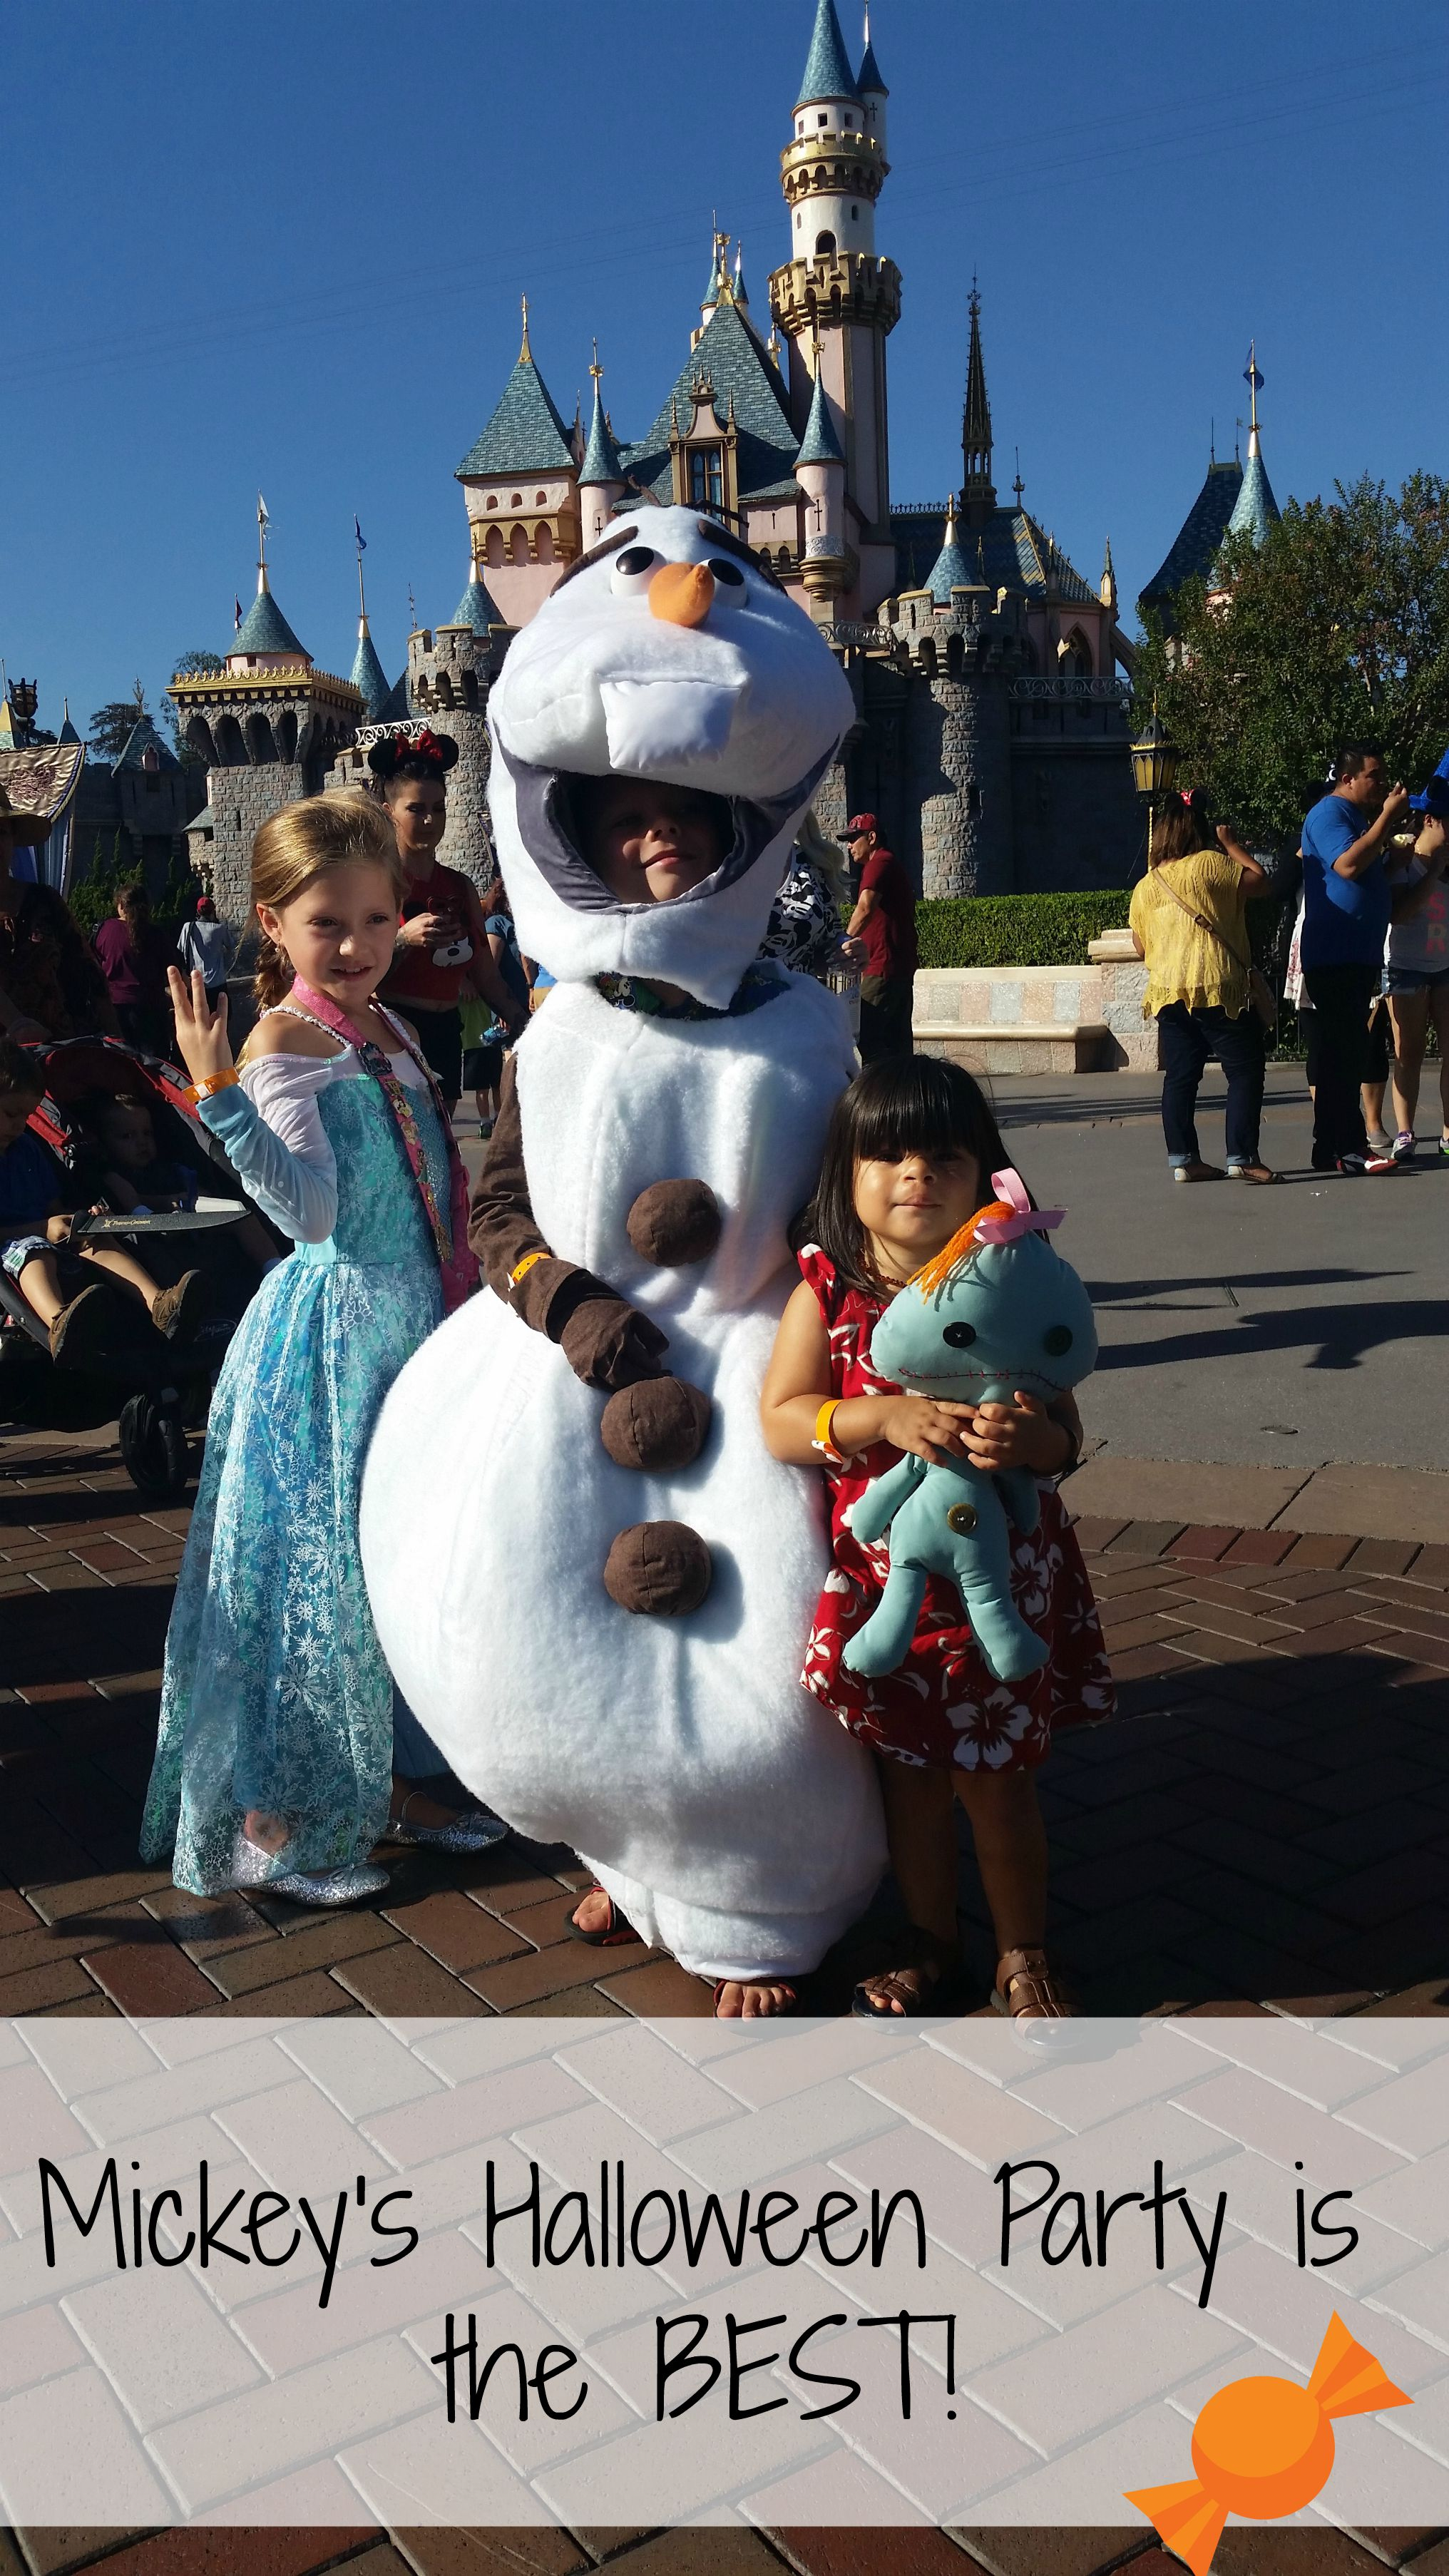 Mickey's Halloween Party dates for 2017 at Disneyland!